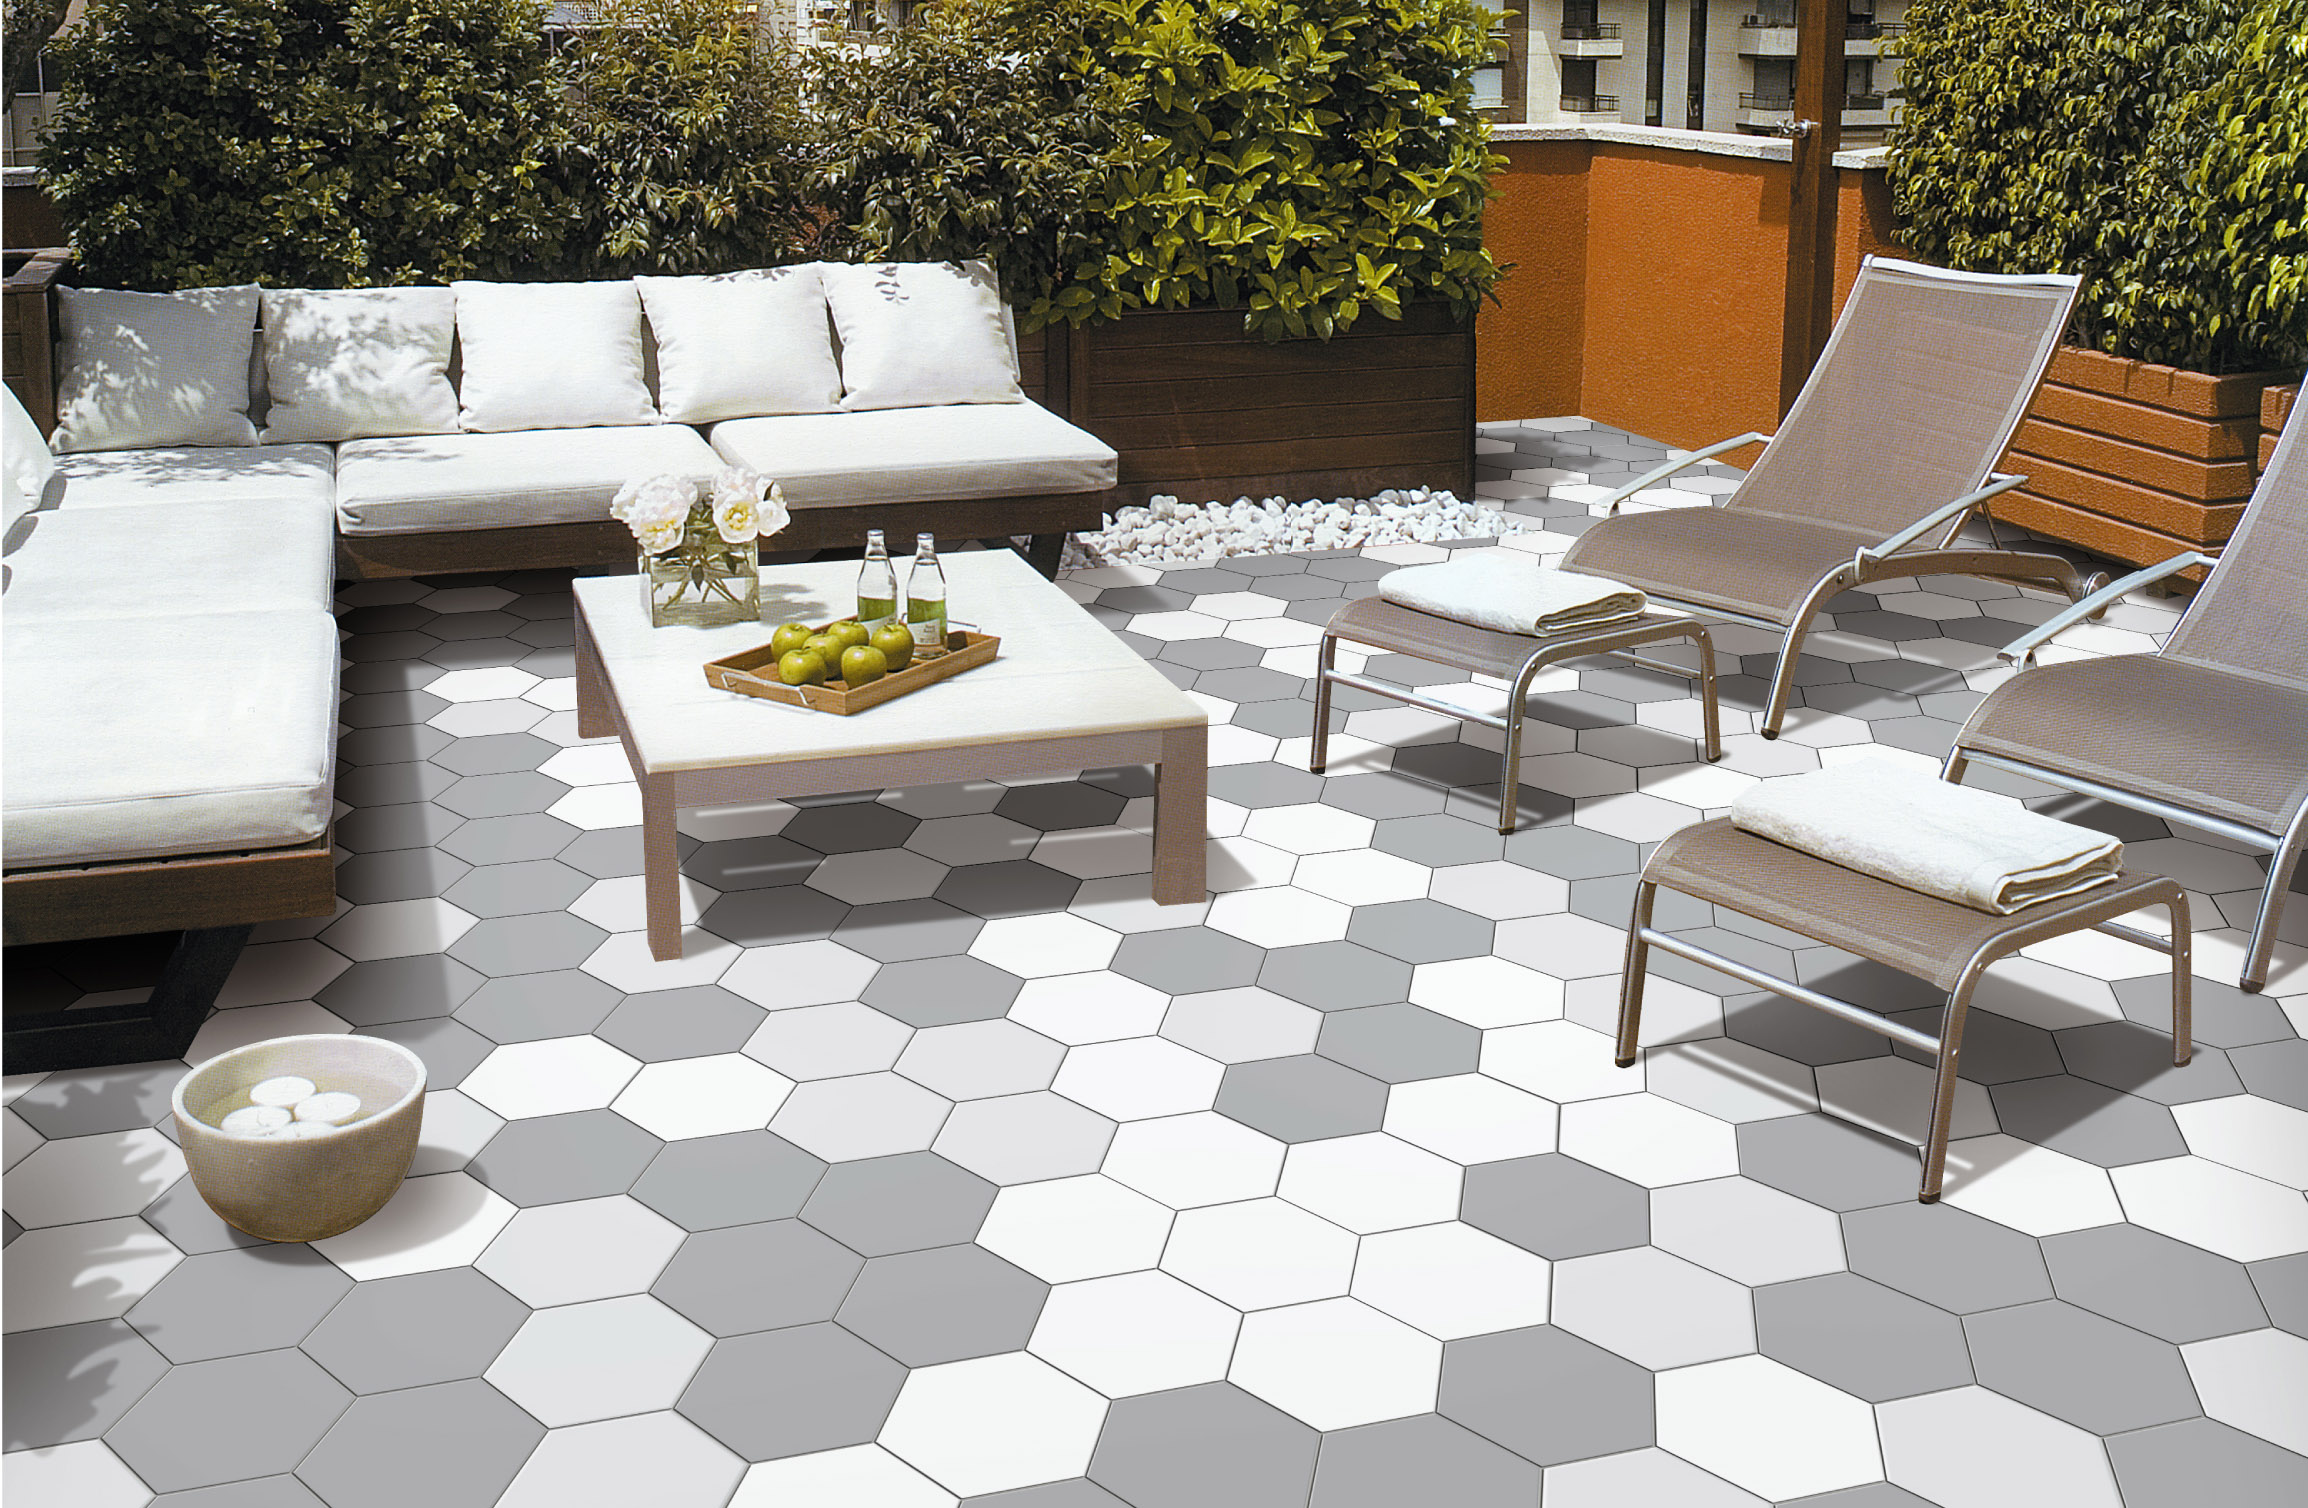 Find Hexagon Living Room Floor Tile,Hexagon Living Room Floor Tile ...